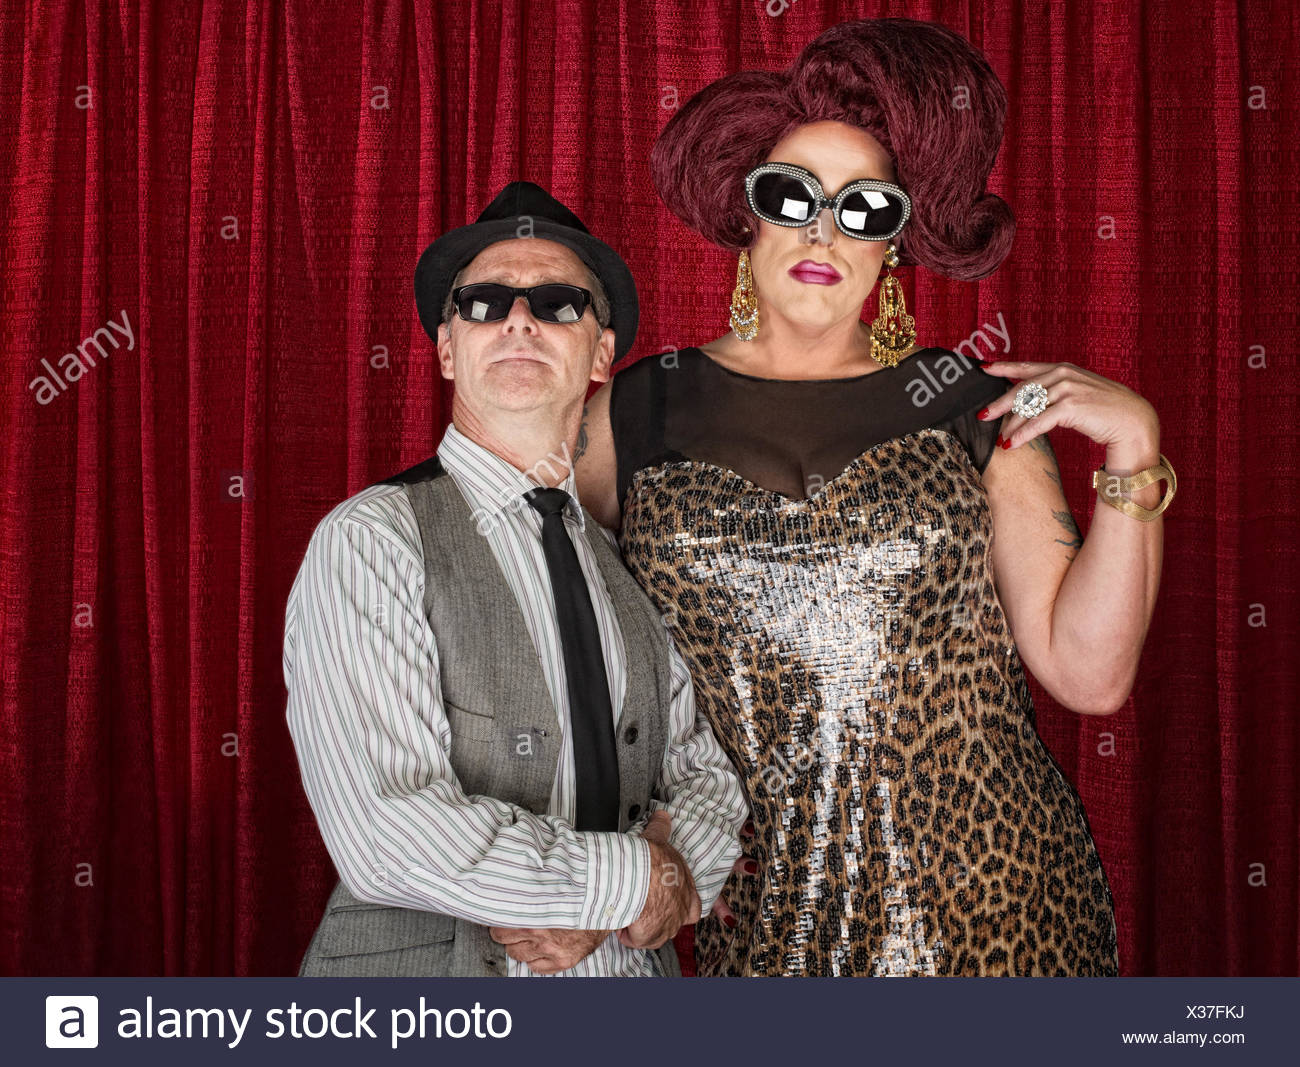 Drag Queen Man Photos   Drag Queen Man Images - Page 6 - Alamy 6ade882bbf4d